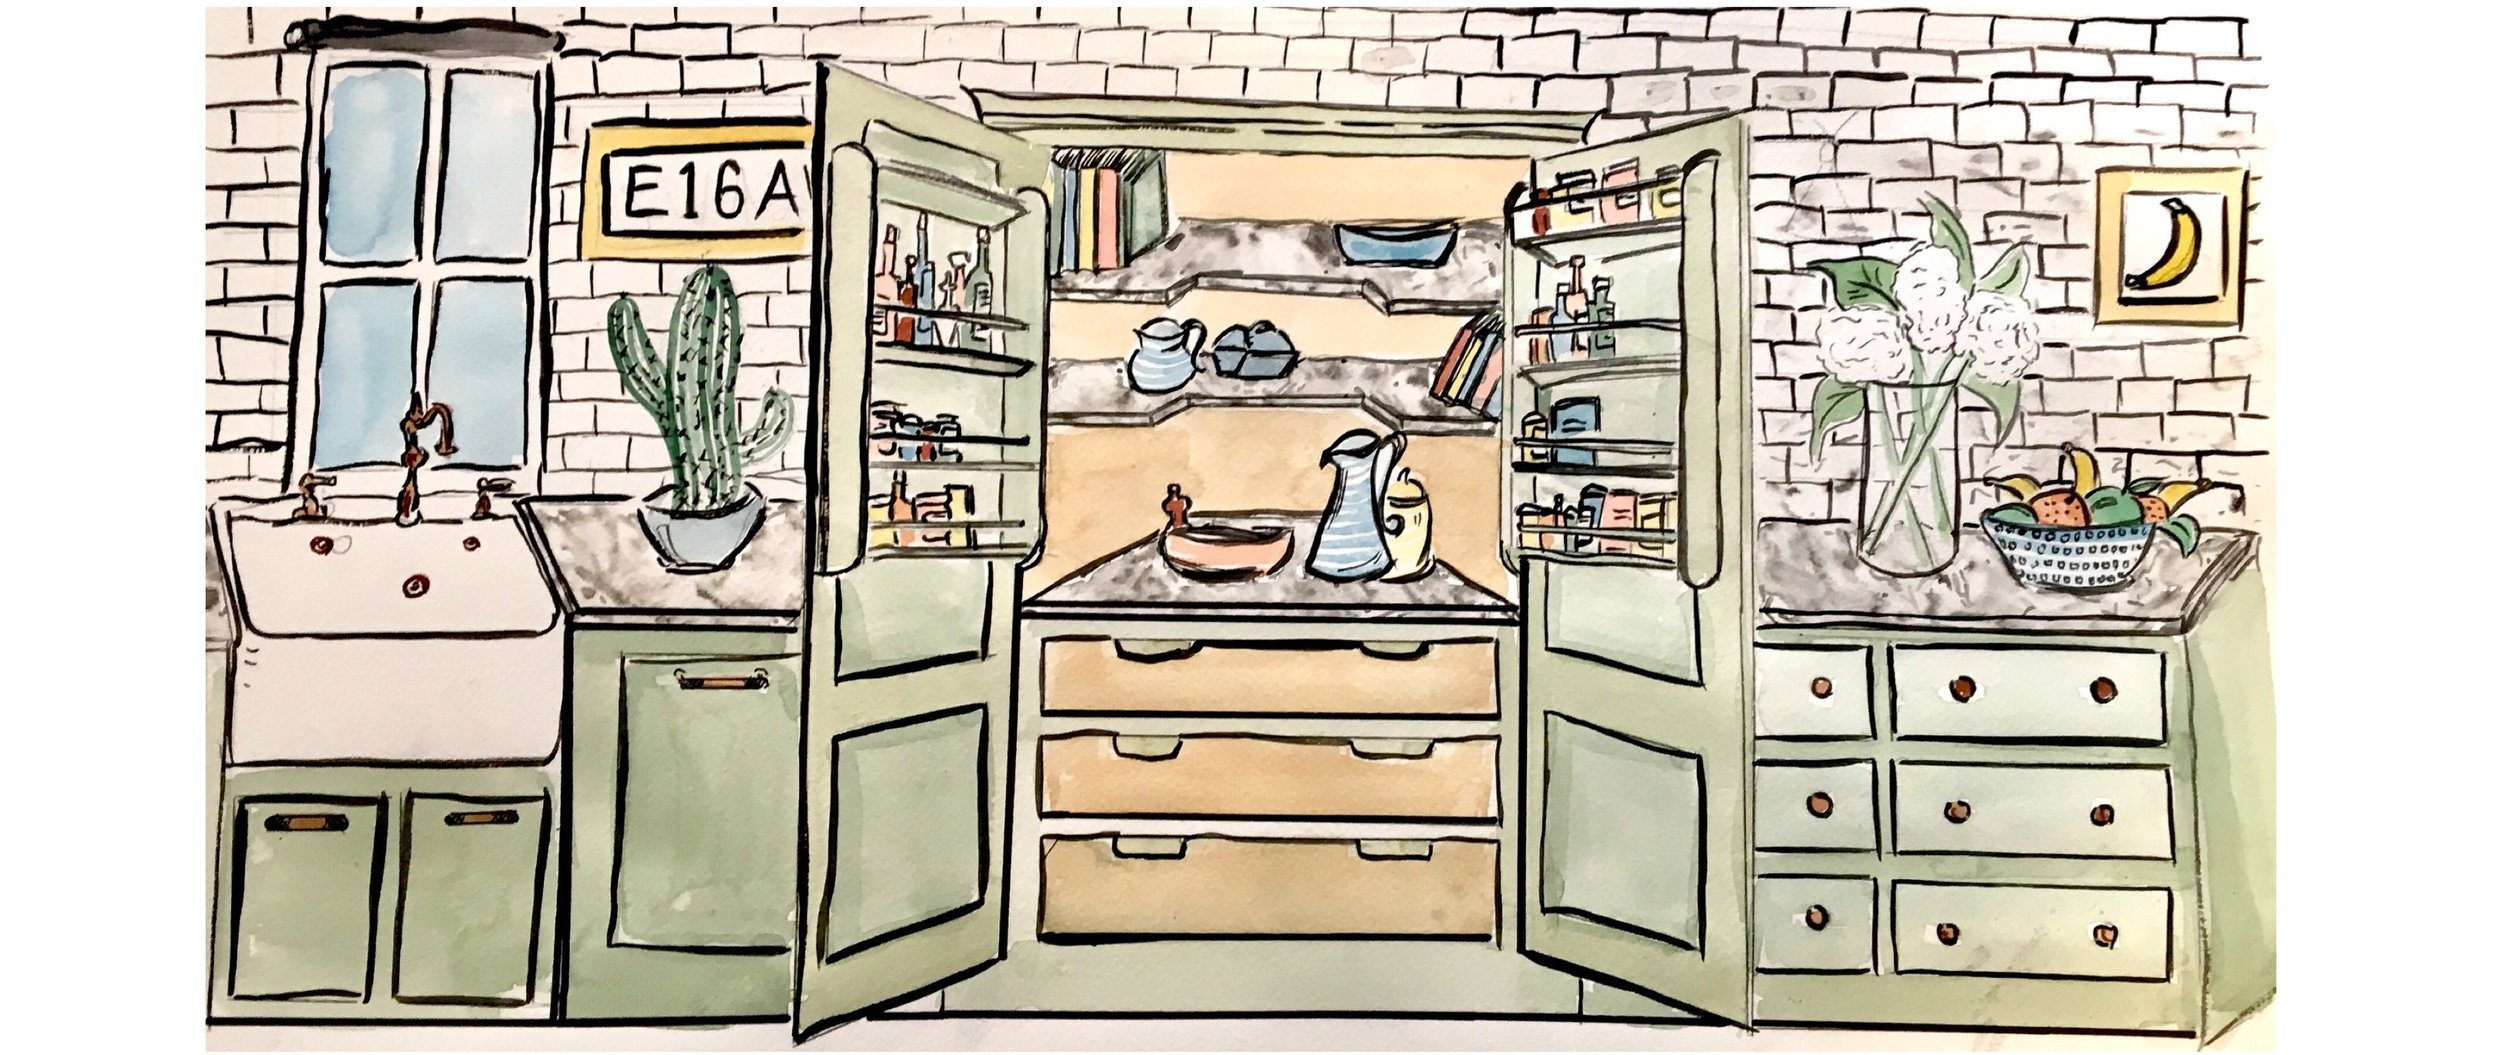 Herringbone-Pantry-Illustration.jpg